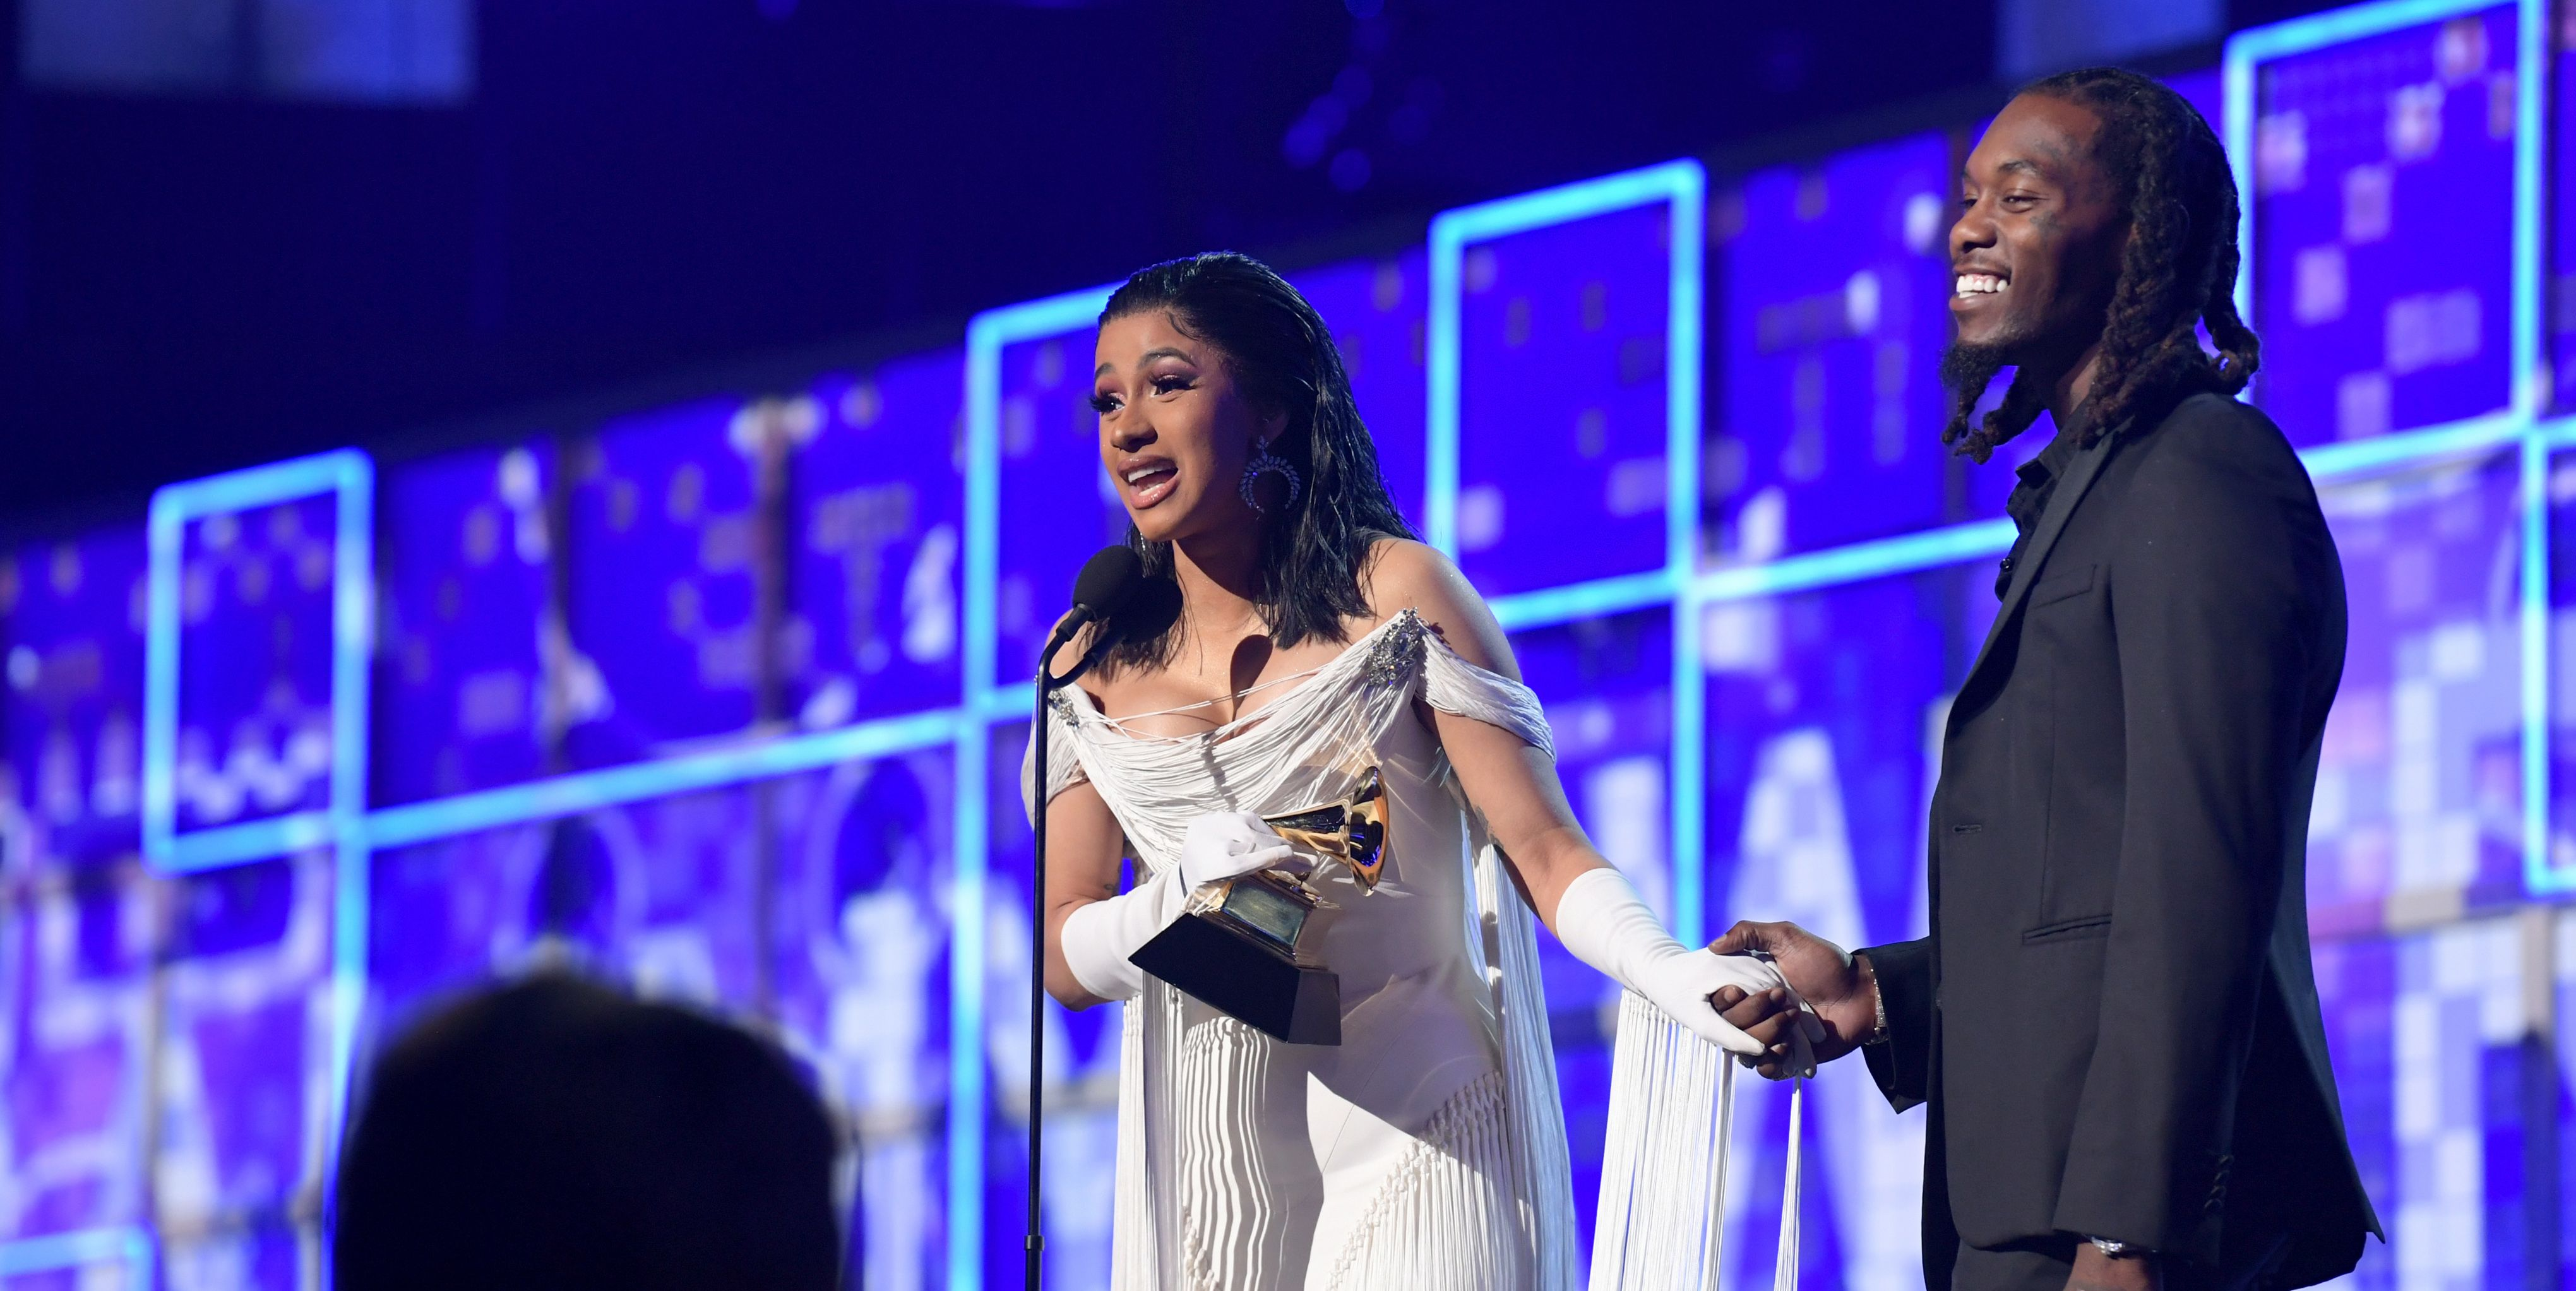 Cardi B Made History With Her Grammy Win, and Her Speech Is the Best